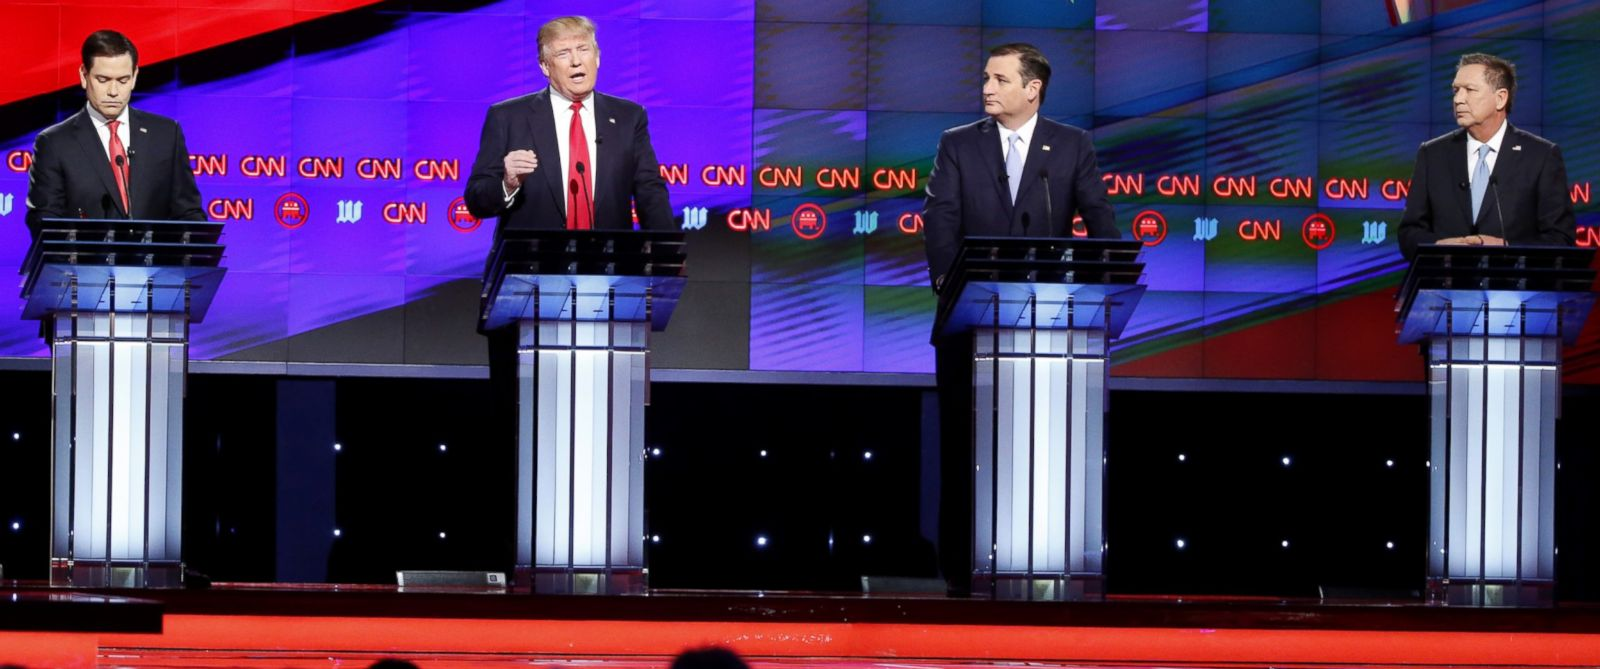 PHOTO: Republican presidential candidates, Sen. Marco Rubio, Donald Trump, Sen. Ted Cruz and Ohio Gov. John Kasich at the Republican presidential debate at the University of Miami, March 10, 2016, in Coral Gables, Fla.